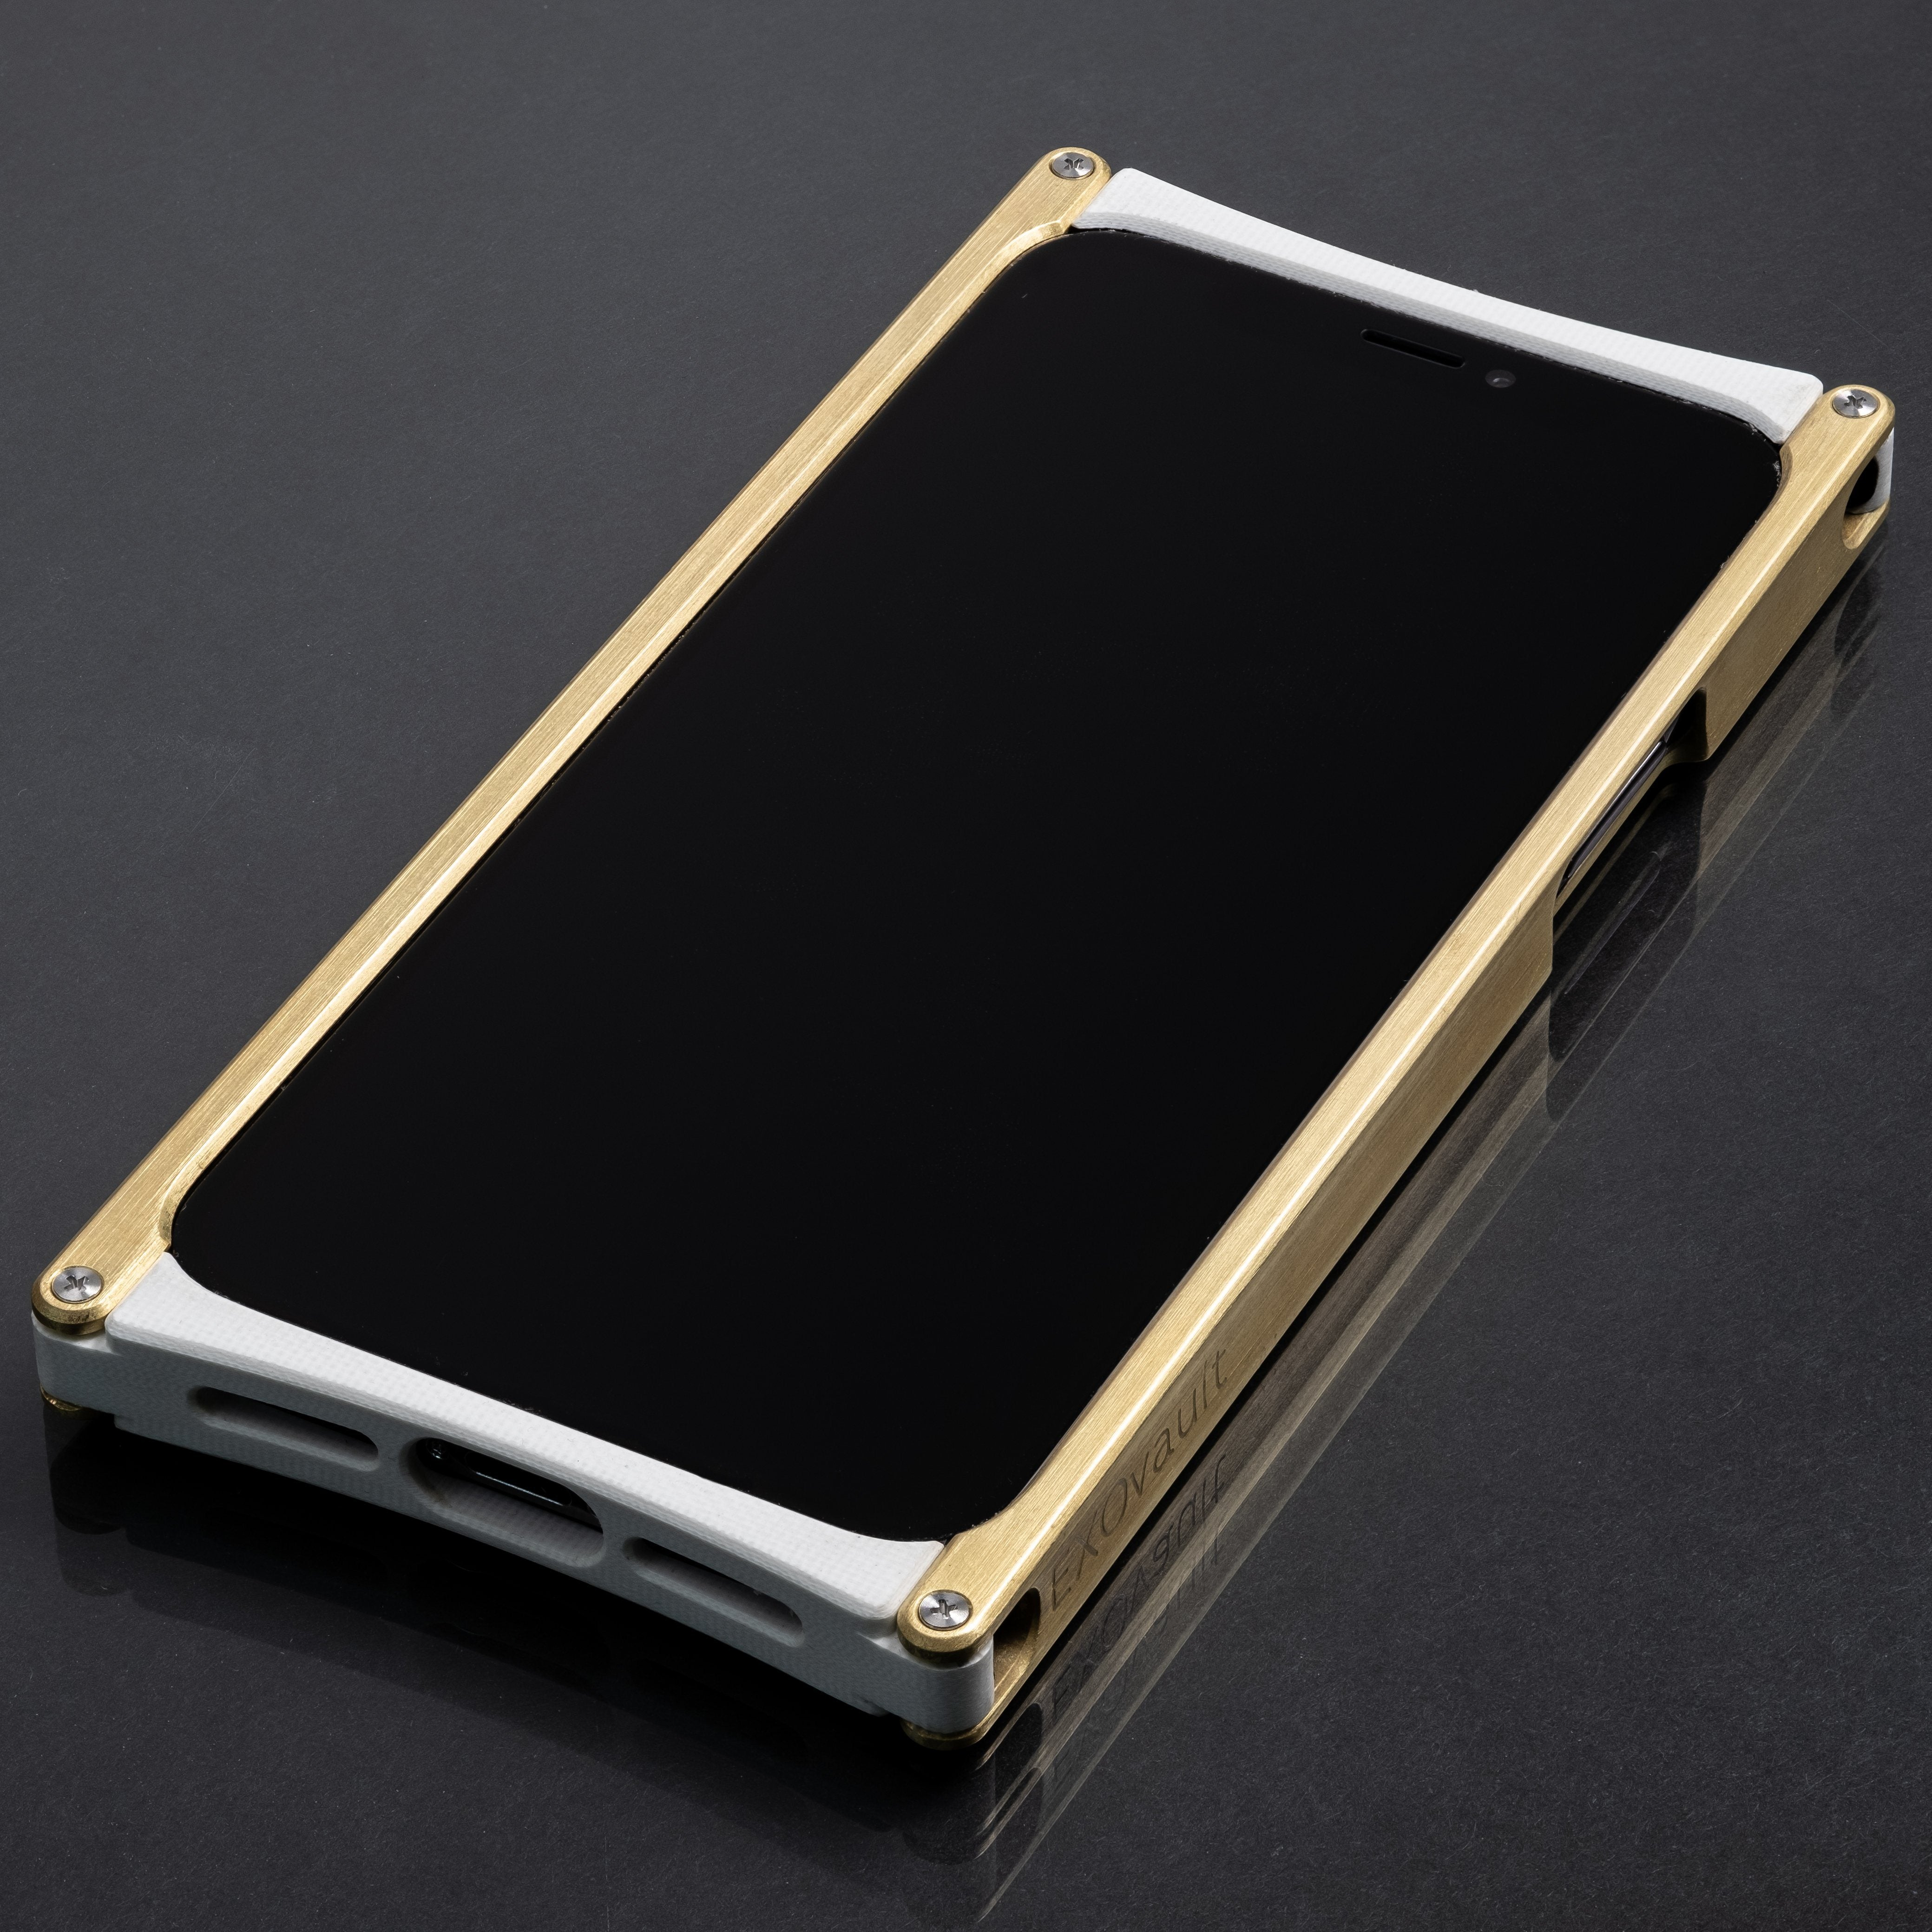 iPhone 11 Pro Case, Europa case in Brass and White G10